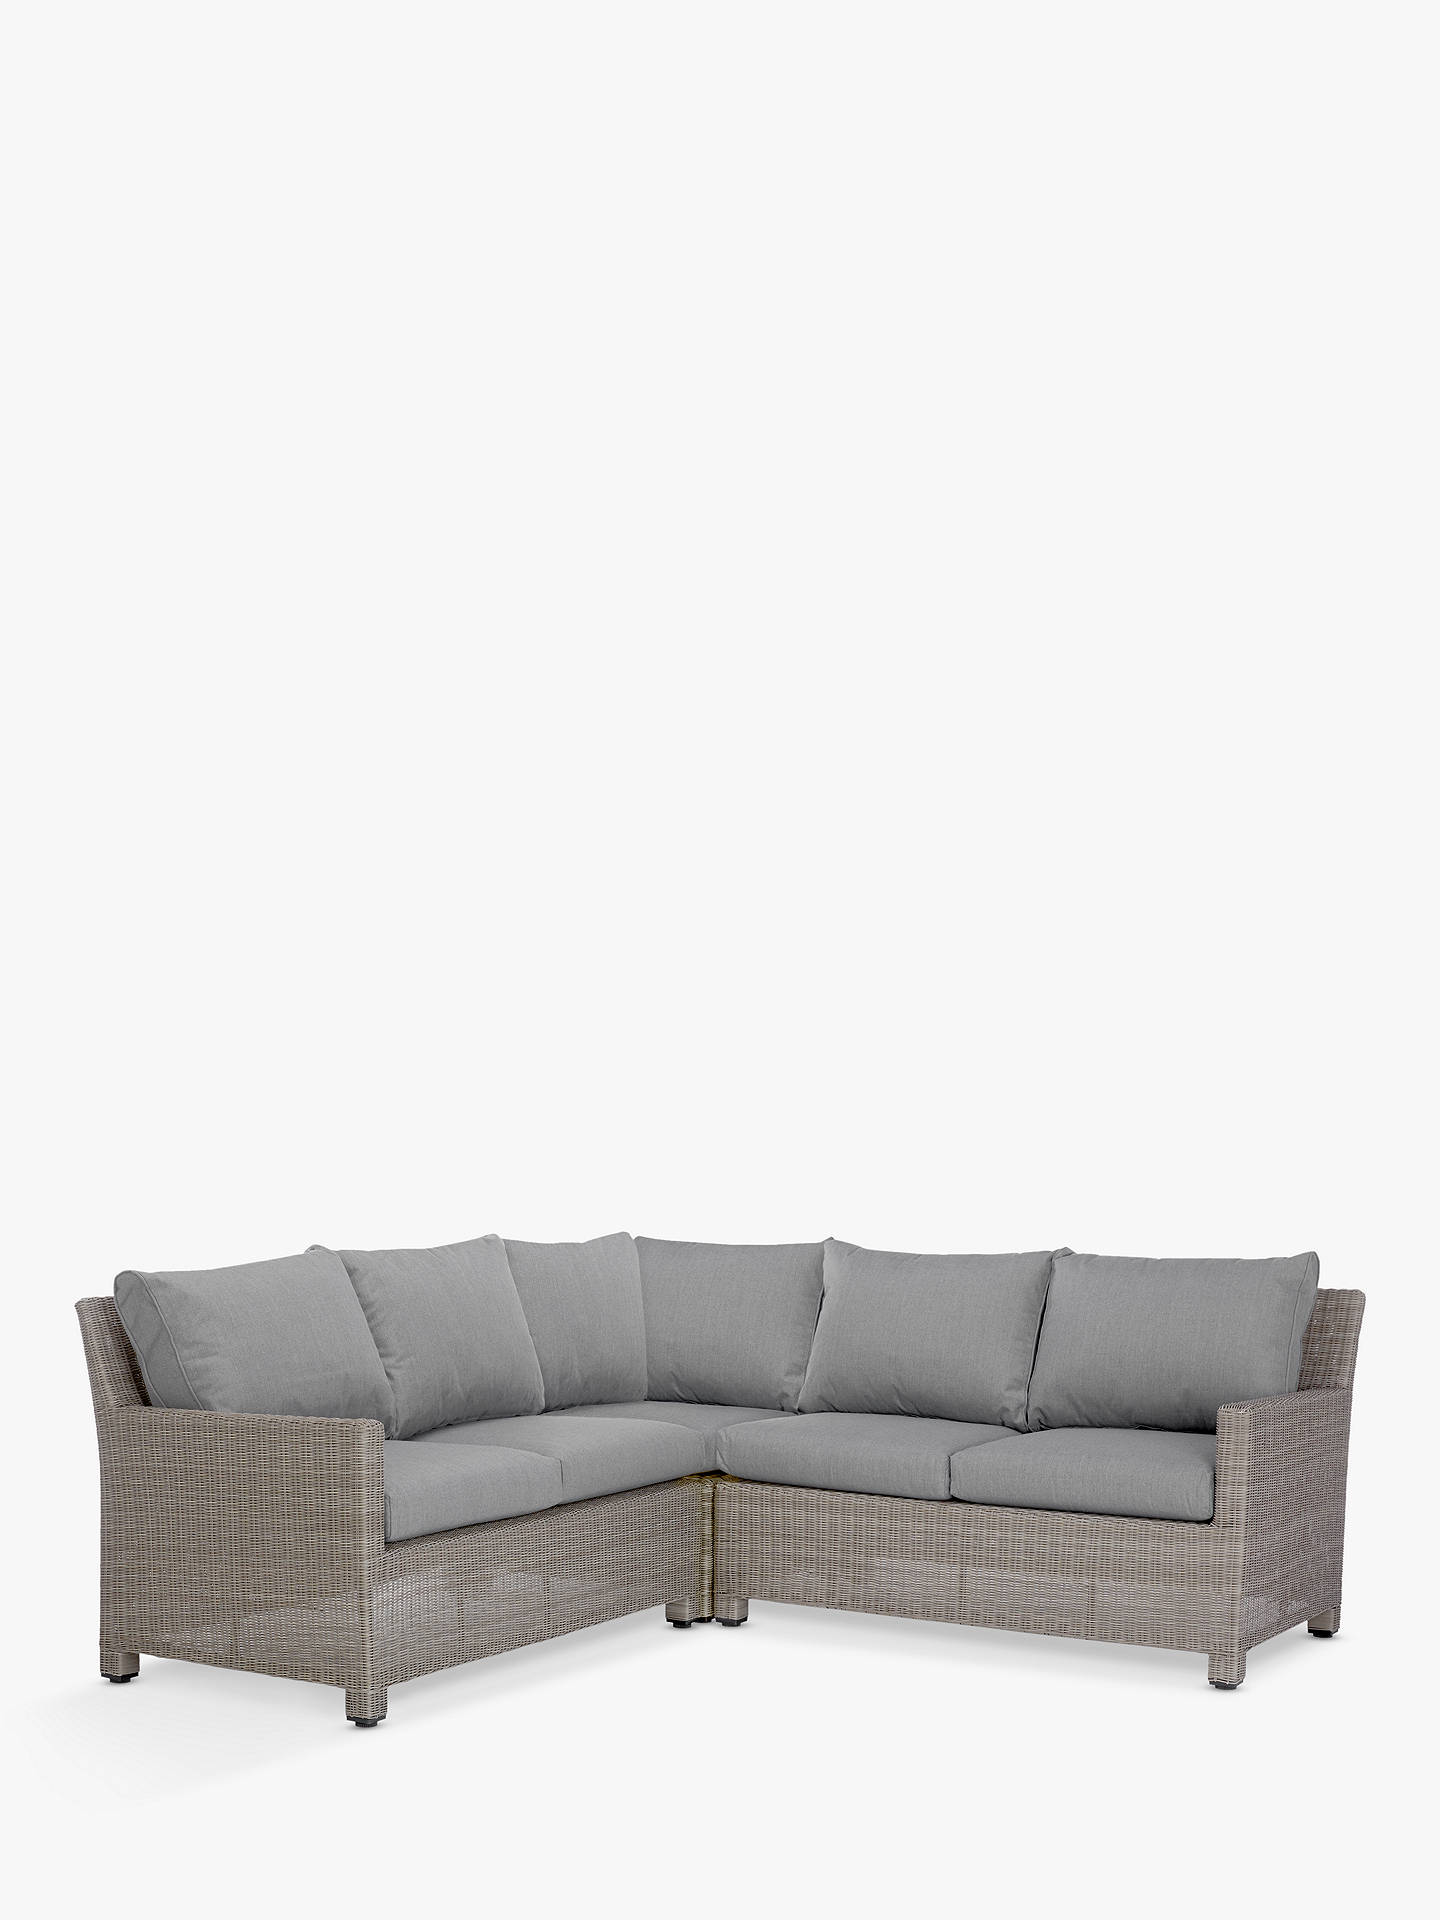 John Lewis Partners Dante Garden Modular 4 Seater Corner Lounging Sofa Grey Online At